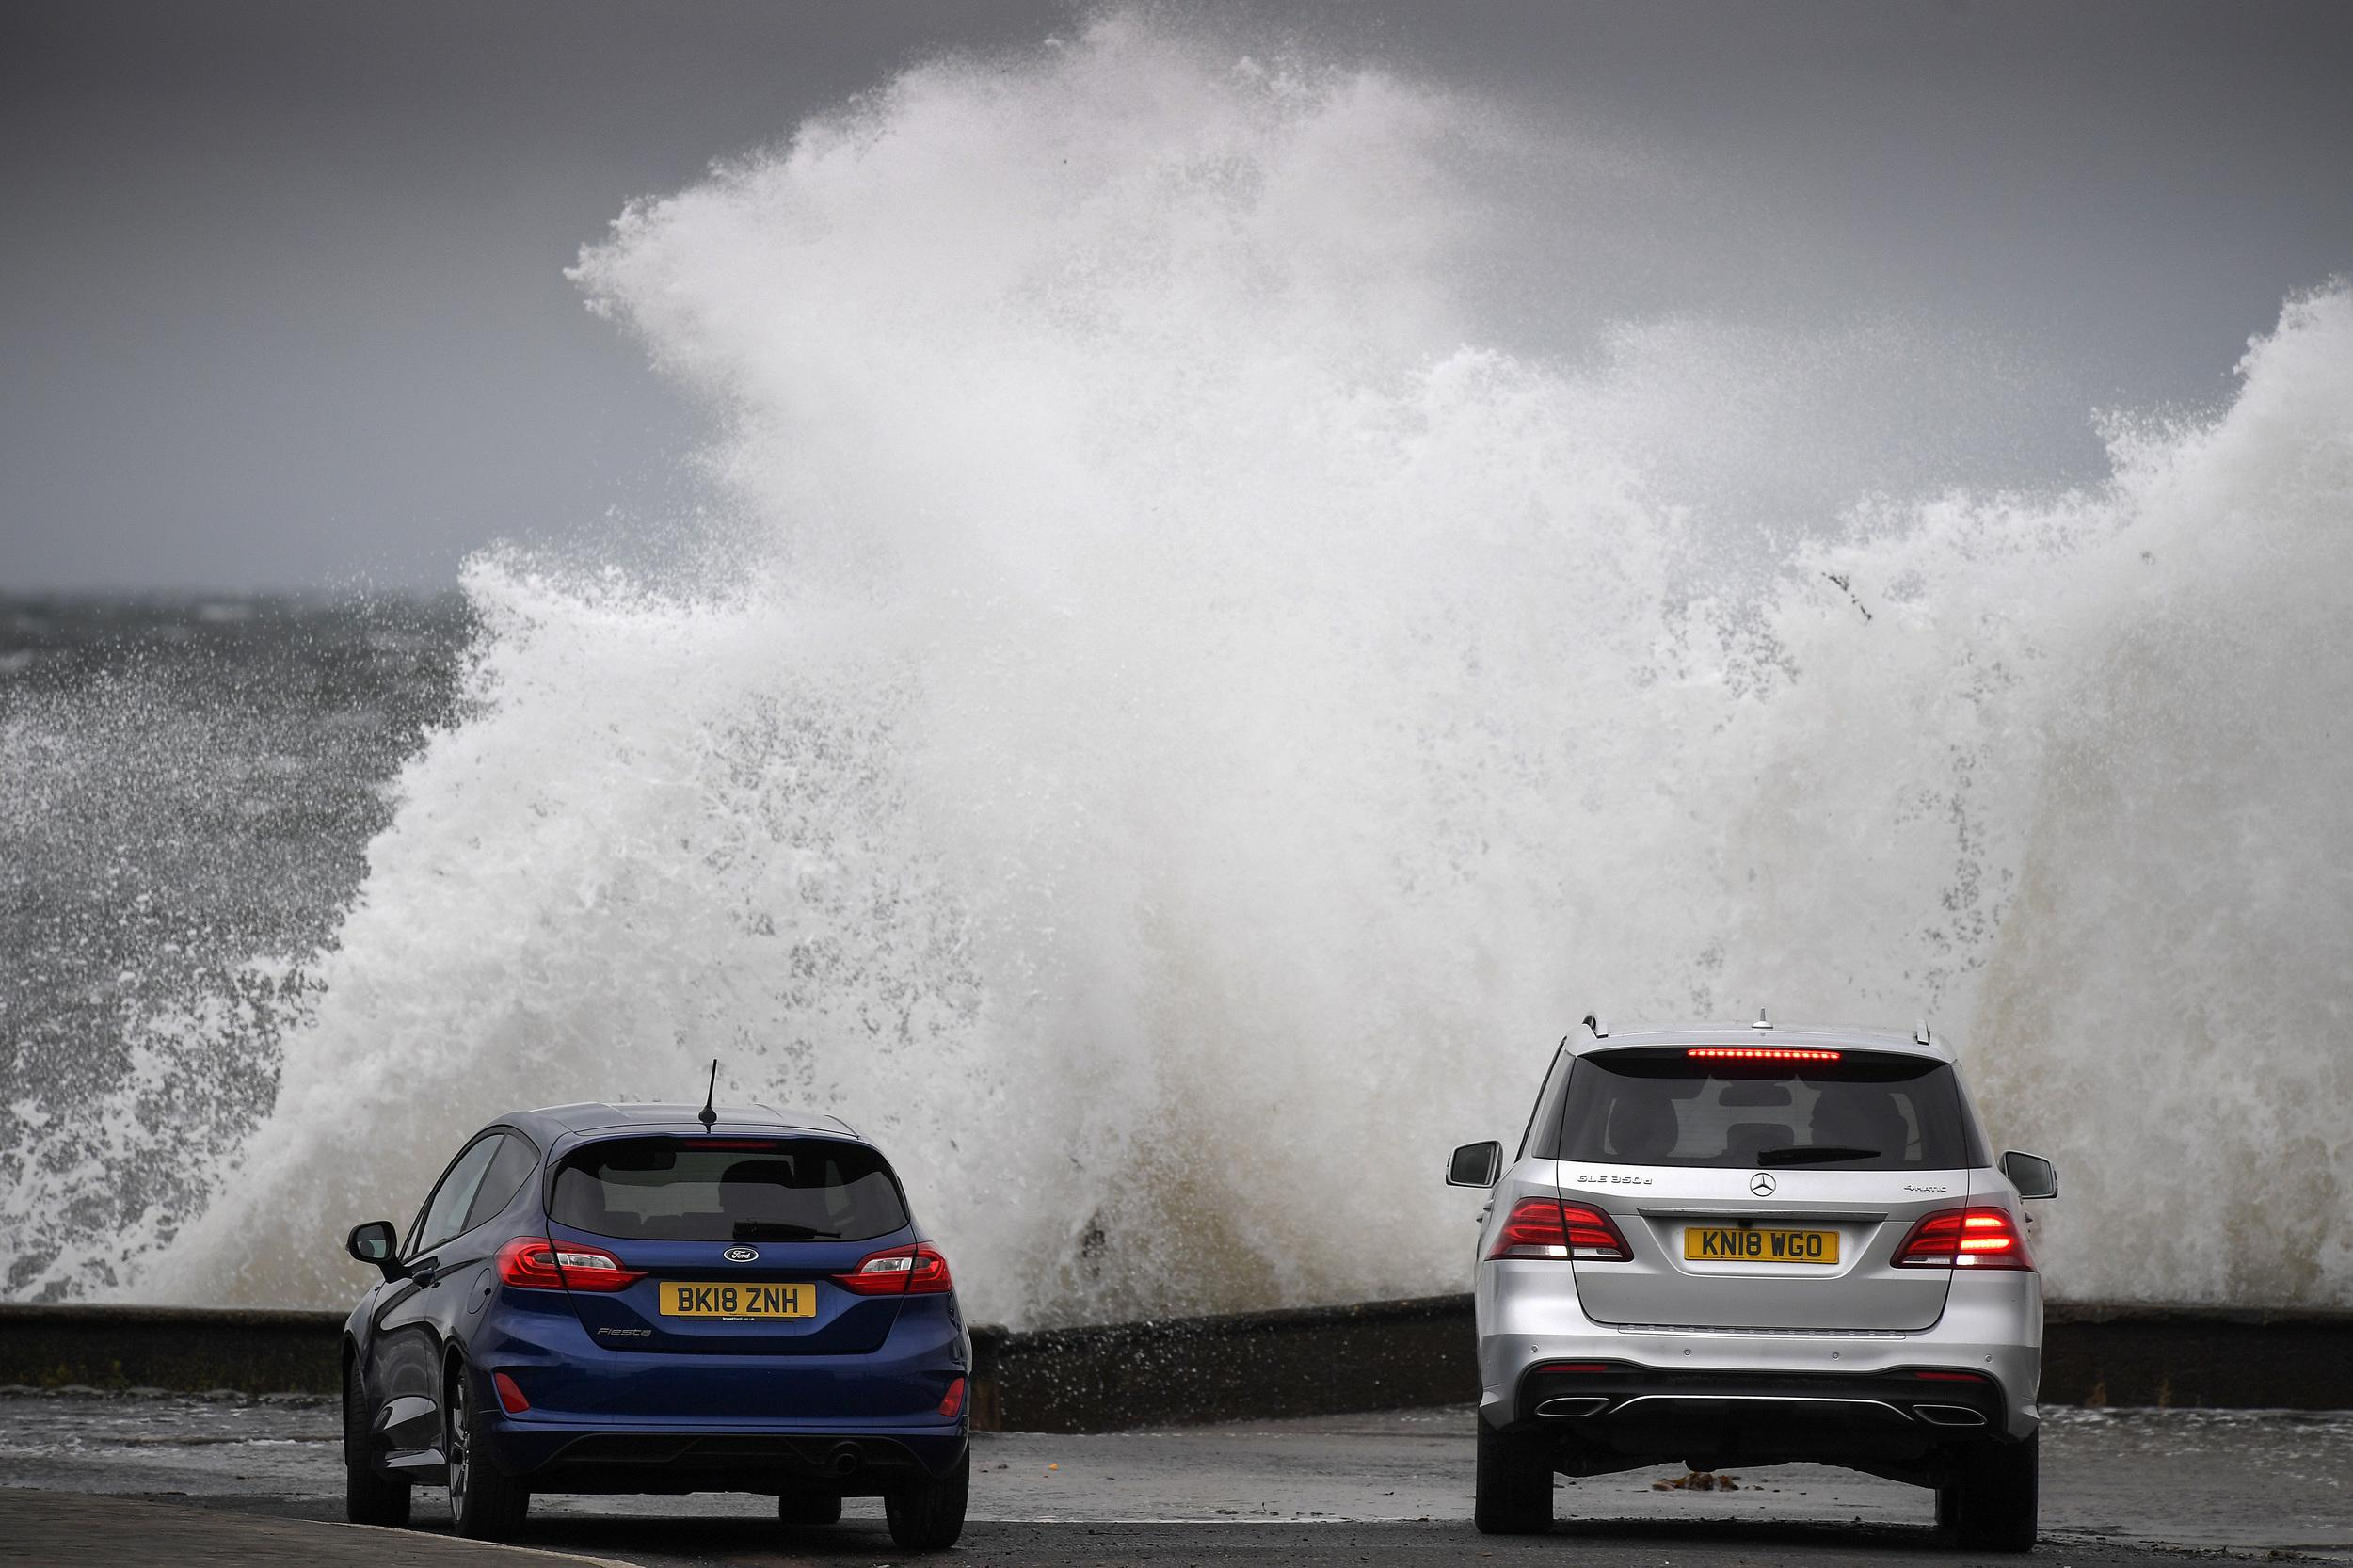 PRESTWICK, SCOTLAND - FEBRUARY 08: Members of the public look on as Storm Erik makes landfall with winds of up to 70mph due to hit some areas of the UK along with heavy rain on February 8, 2019 in Prestwick, Scotland. The Met Office issued two yellow be aware warnings for Friday for strong winds across western Scotland until the evening, and for heavy rain until Saturday afternoon. (Photo by Jeff J Mitchell/Getty Images)